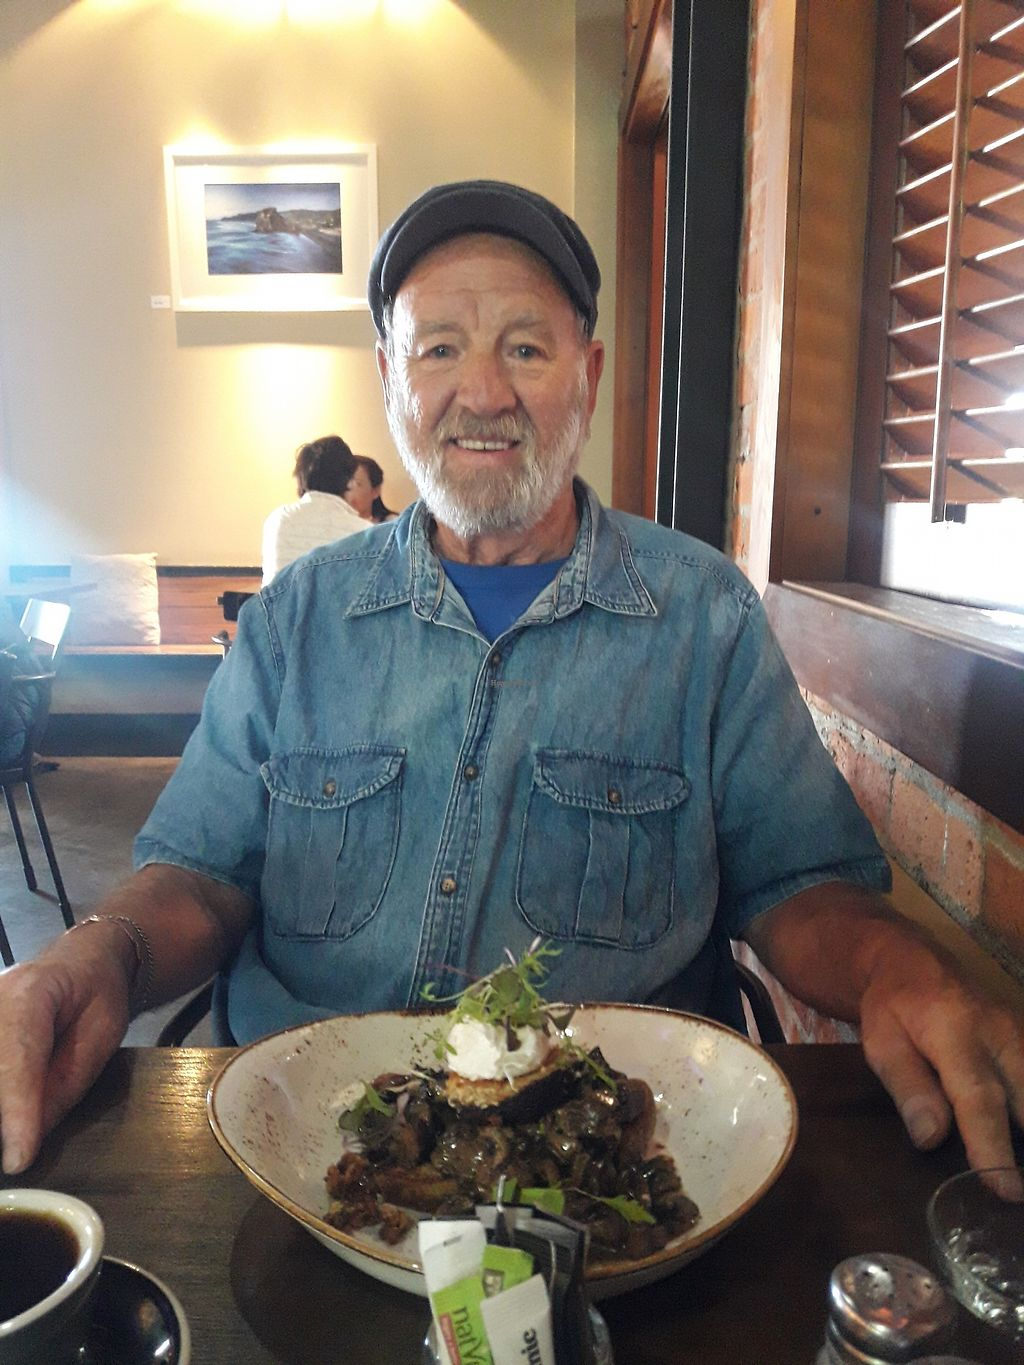 """Photo of The Block Cafe  by <a href=""""/members/profile/TemptationCakes"""">TemptationCakes</a> <br/>Dad with his mushroom bruchetta  <br/> October 5, 2017  - <a href='/contact/abuse/image/102307/311963'>Report</a>"""